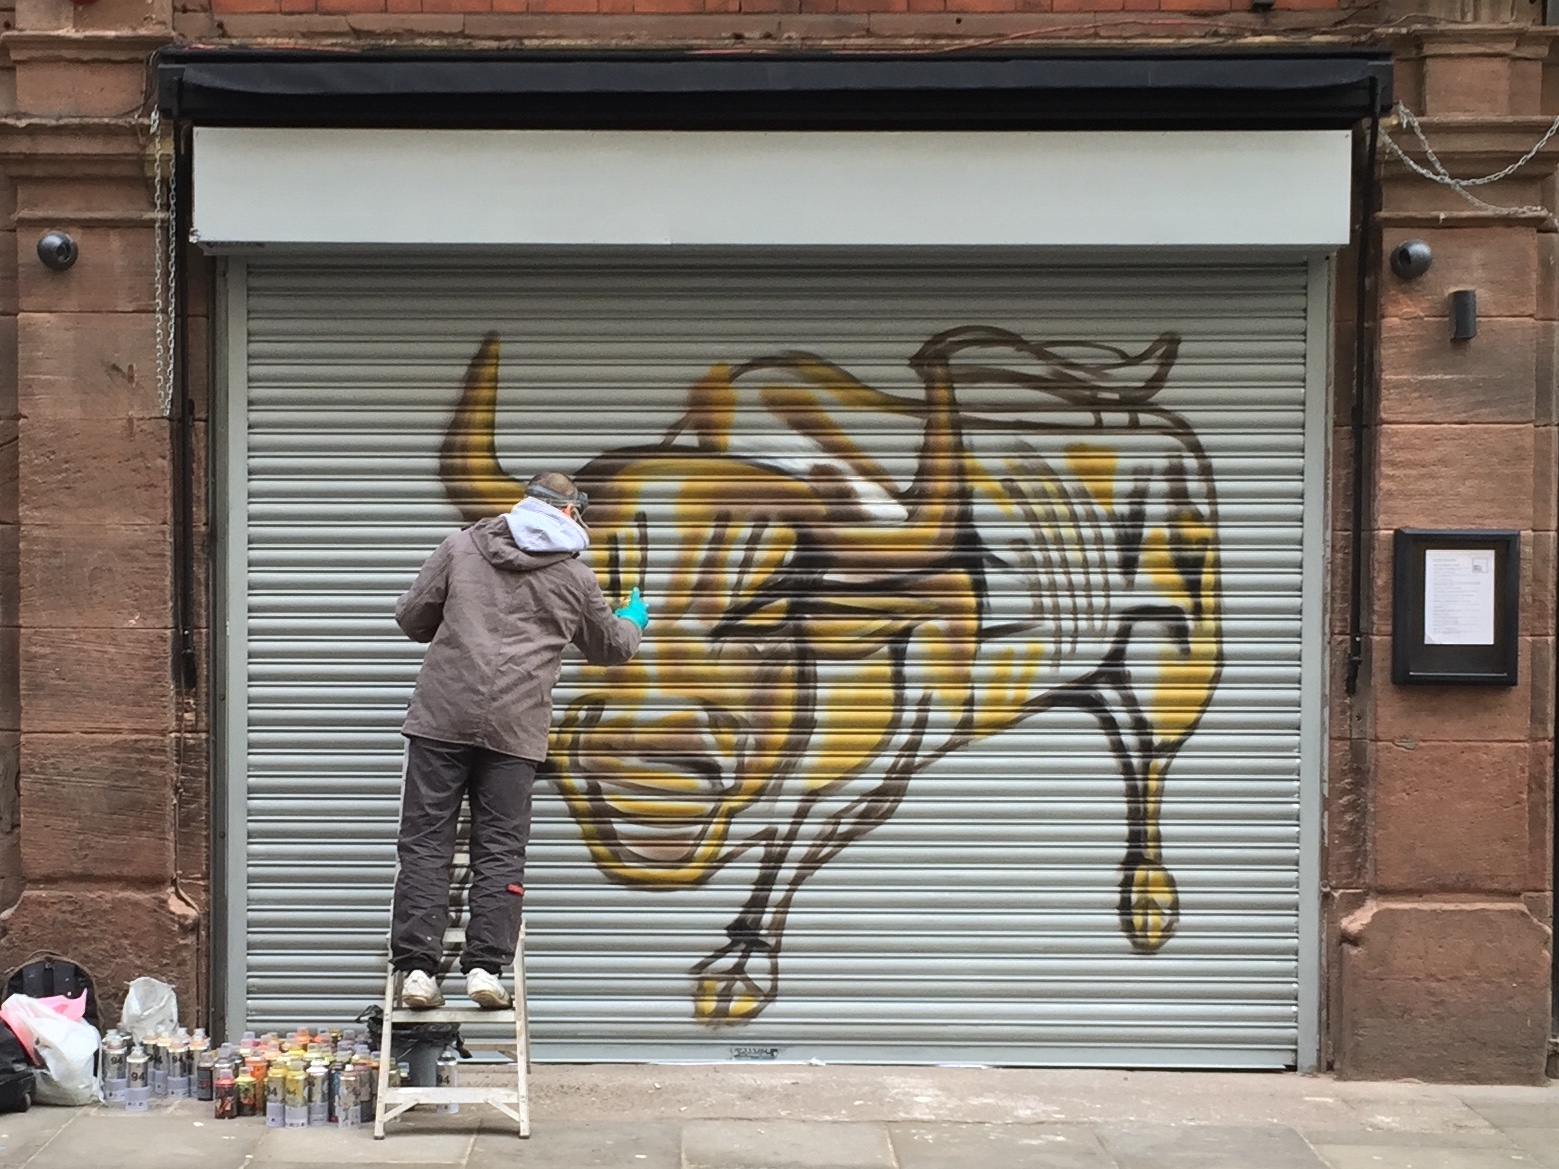 In 2015 I photographed Akse putting creating 'The Bull of Tib Street', commissioned by the Butcher's Quarter.